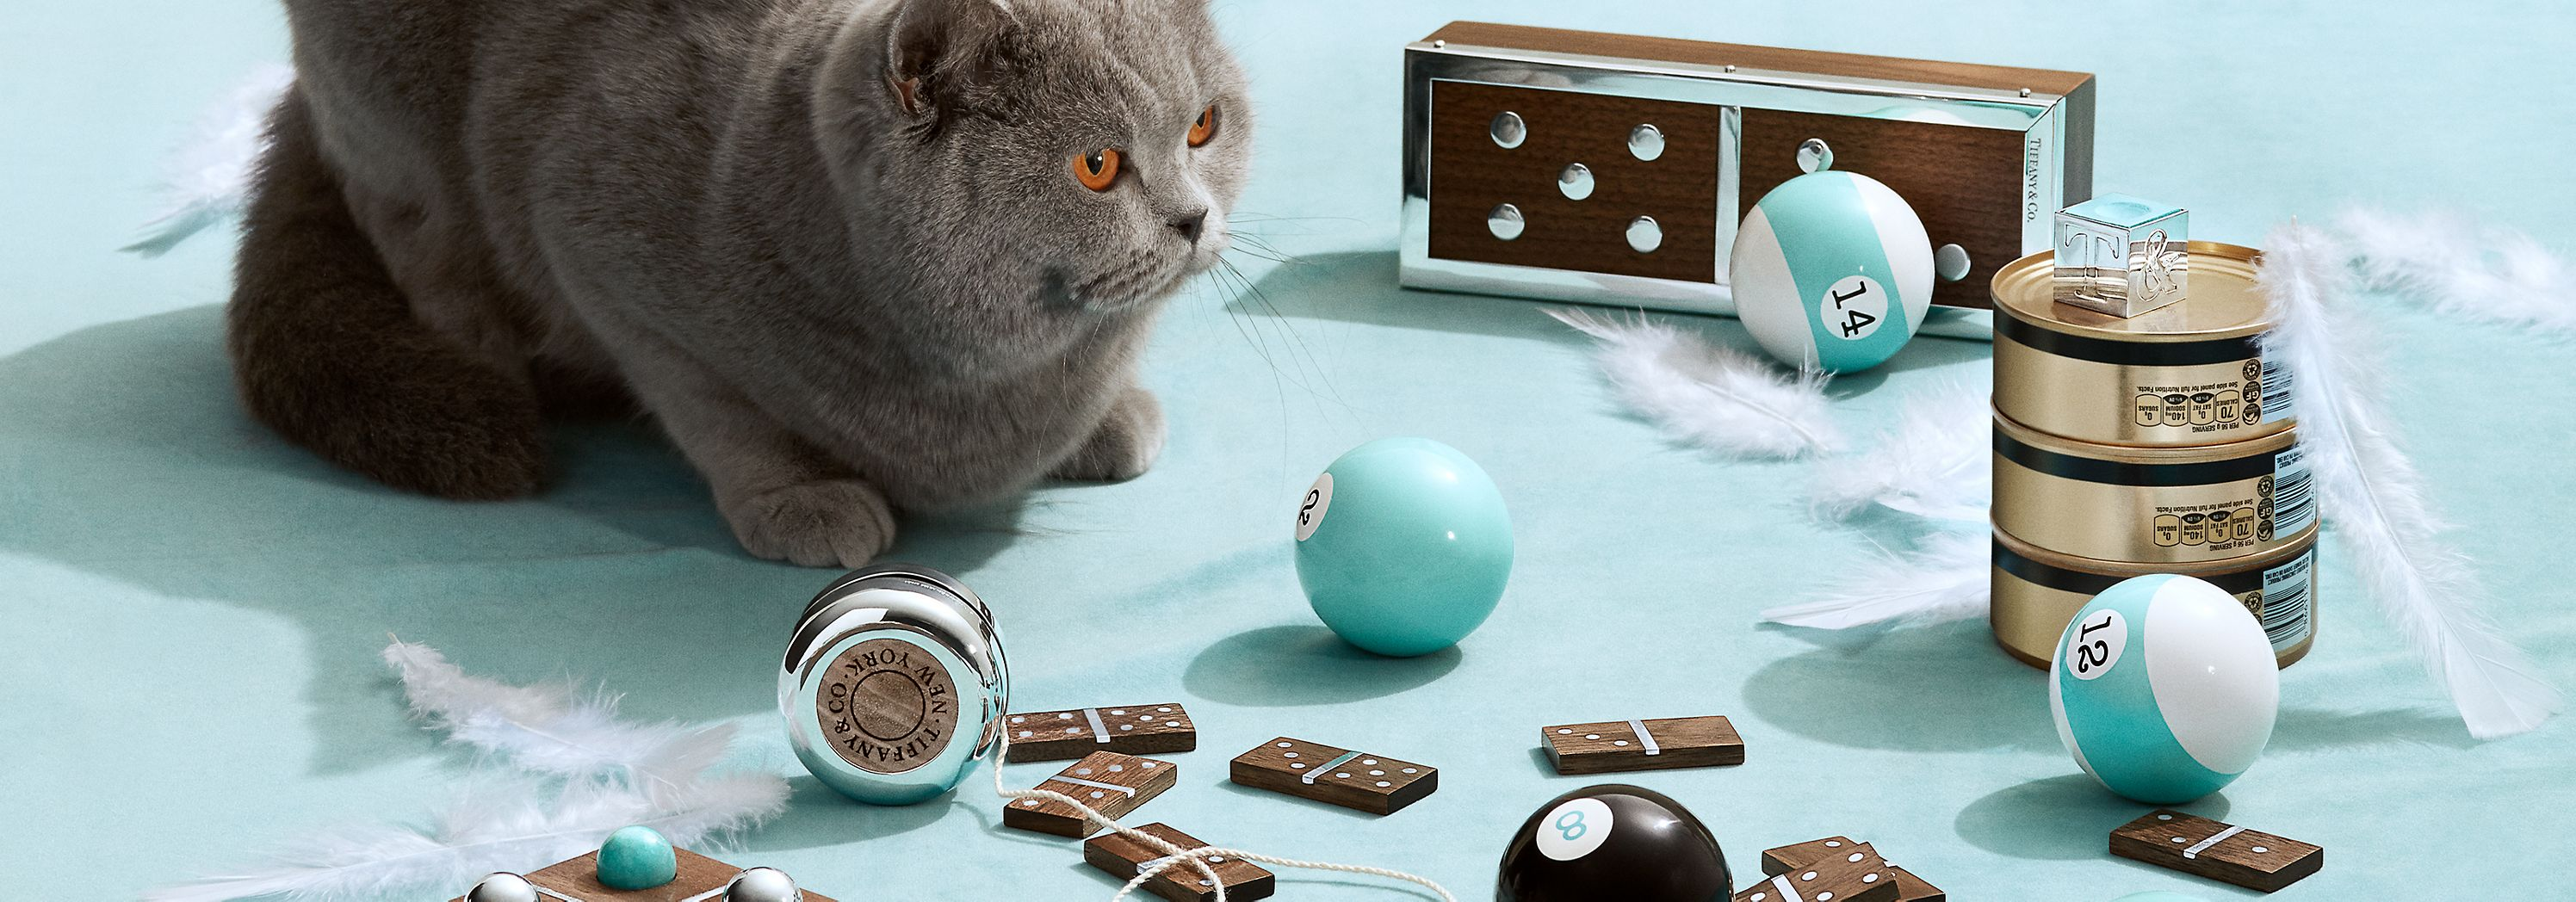 Tiffany & Co. Game Night Essentials